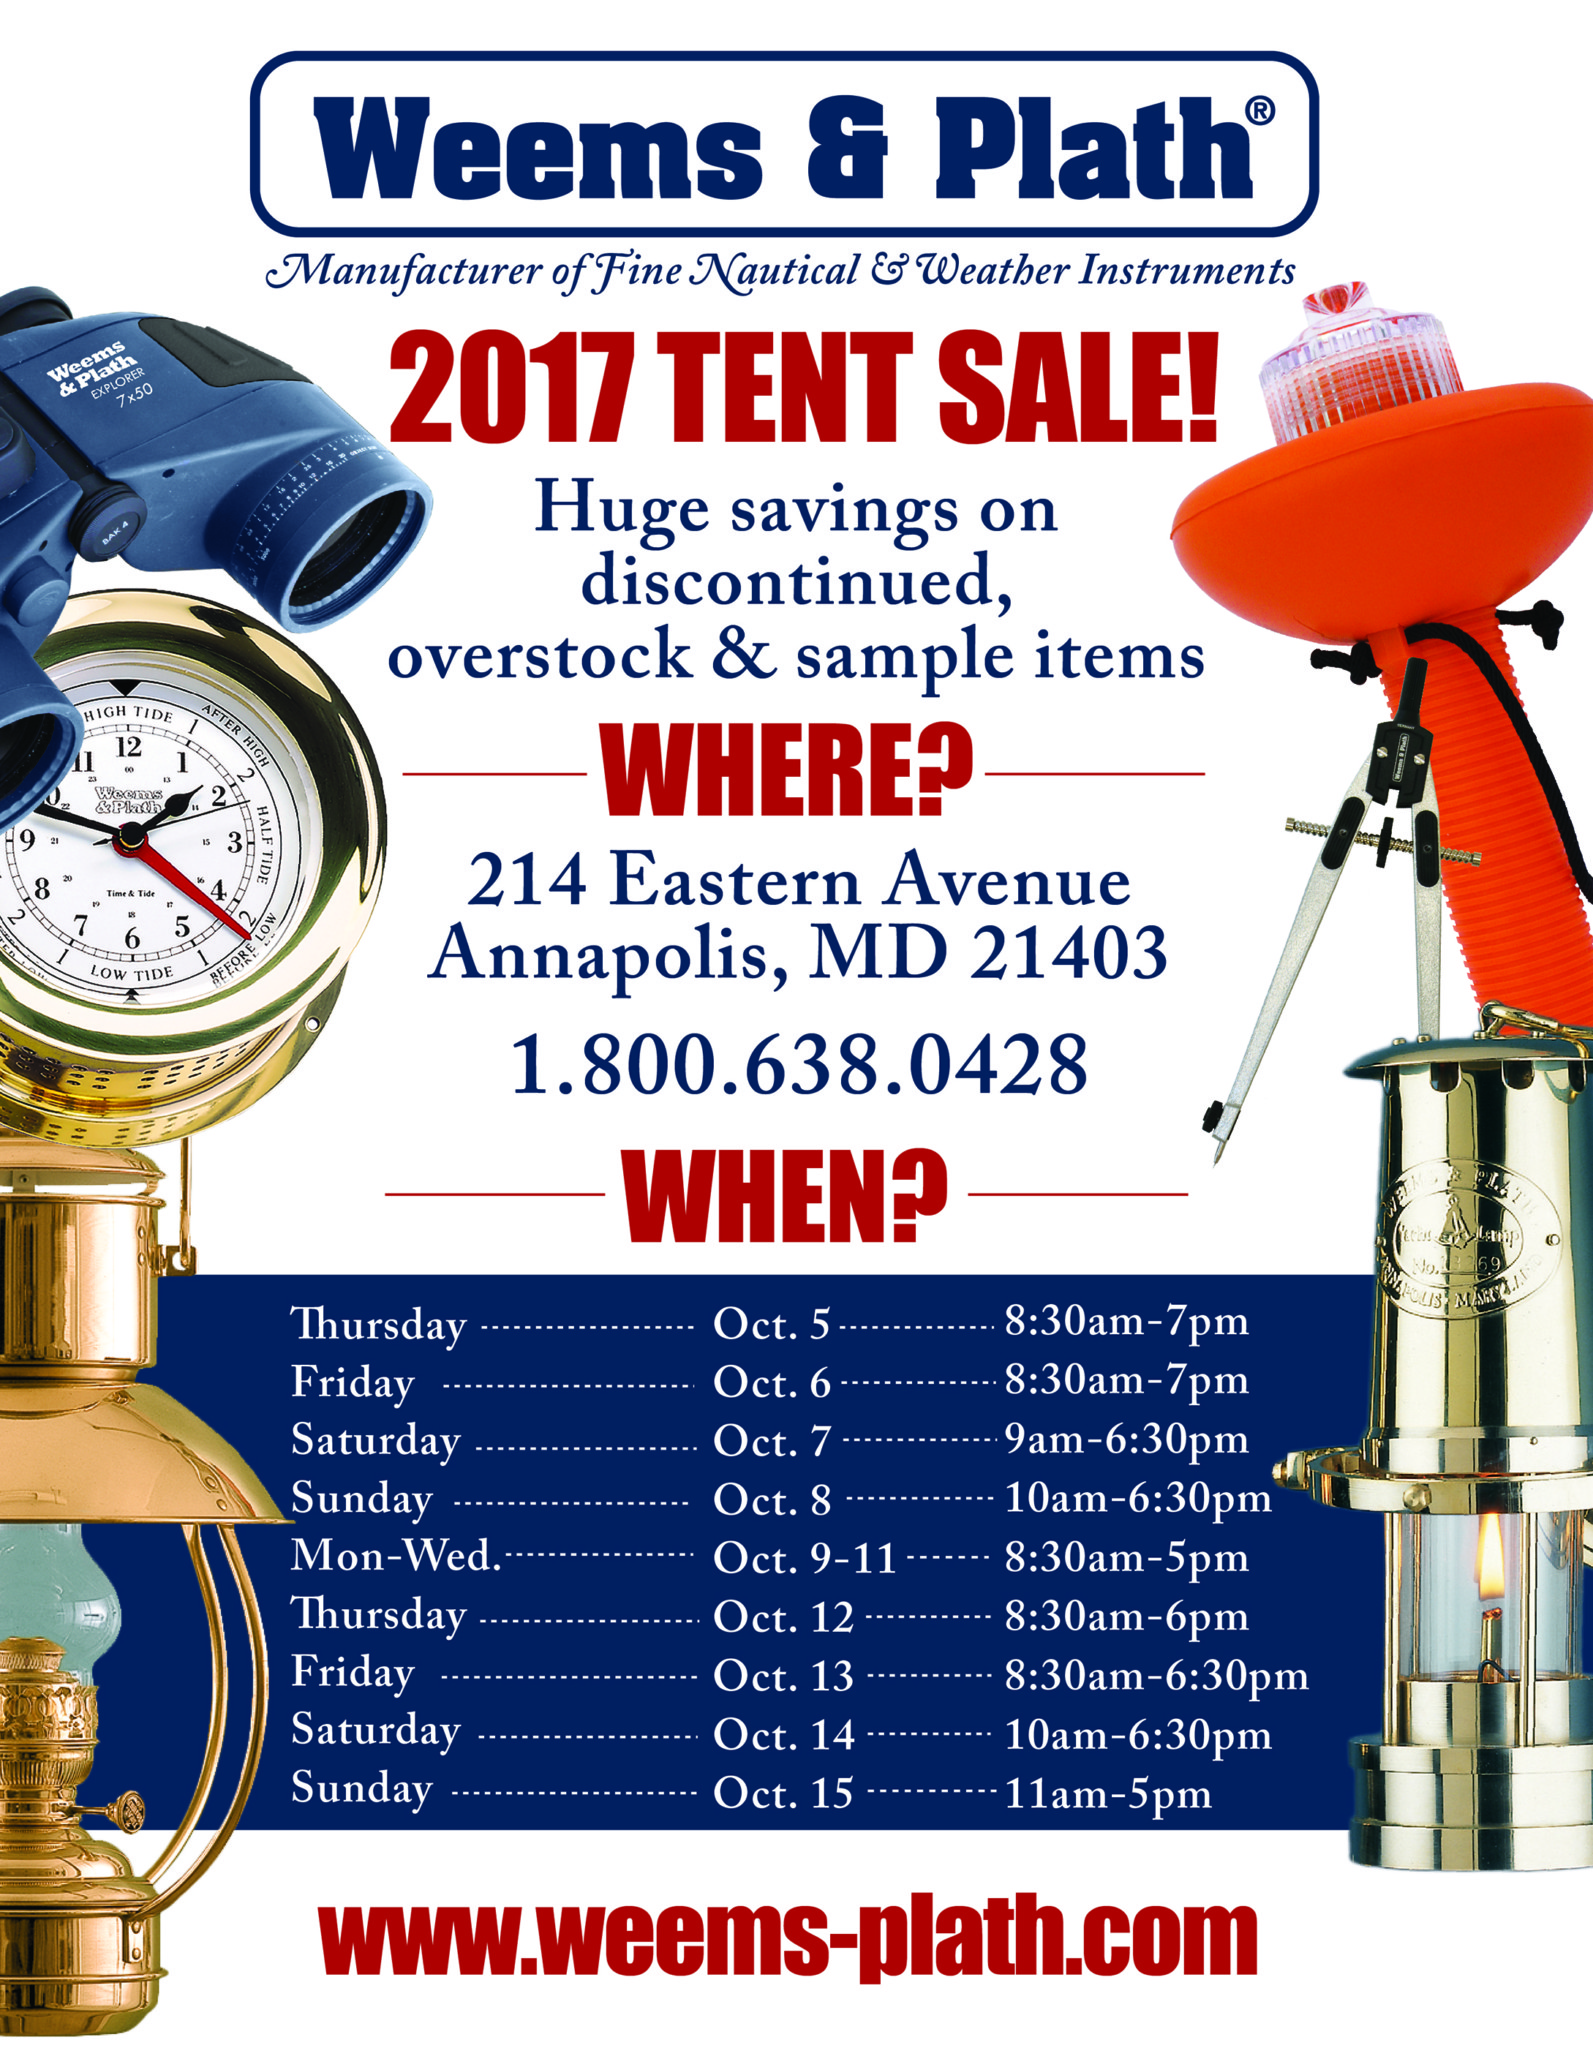 Huge Savings On Discontinued Overstock And Sample Items A Portion Of All Sales Saturday Oct 7th Will Be Donated To Annapolis Green Local Advocate